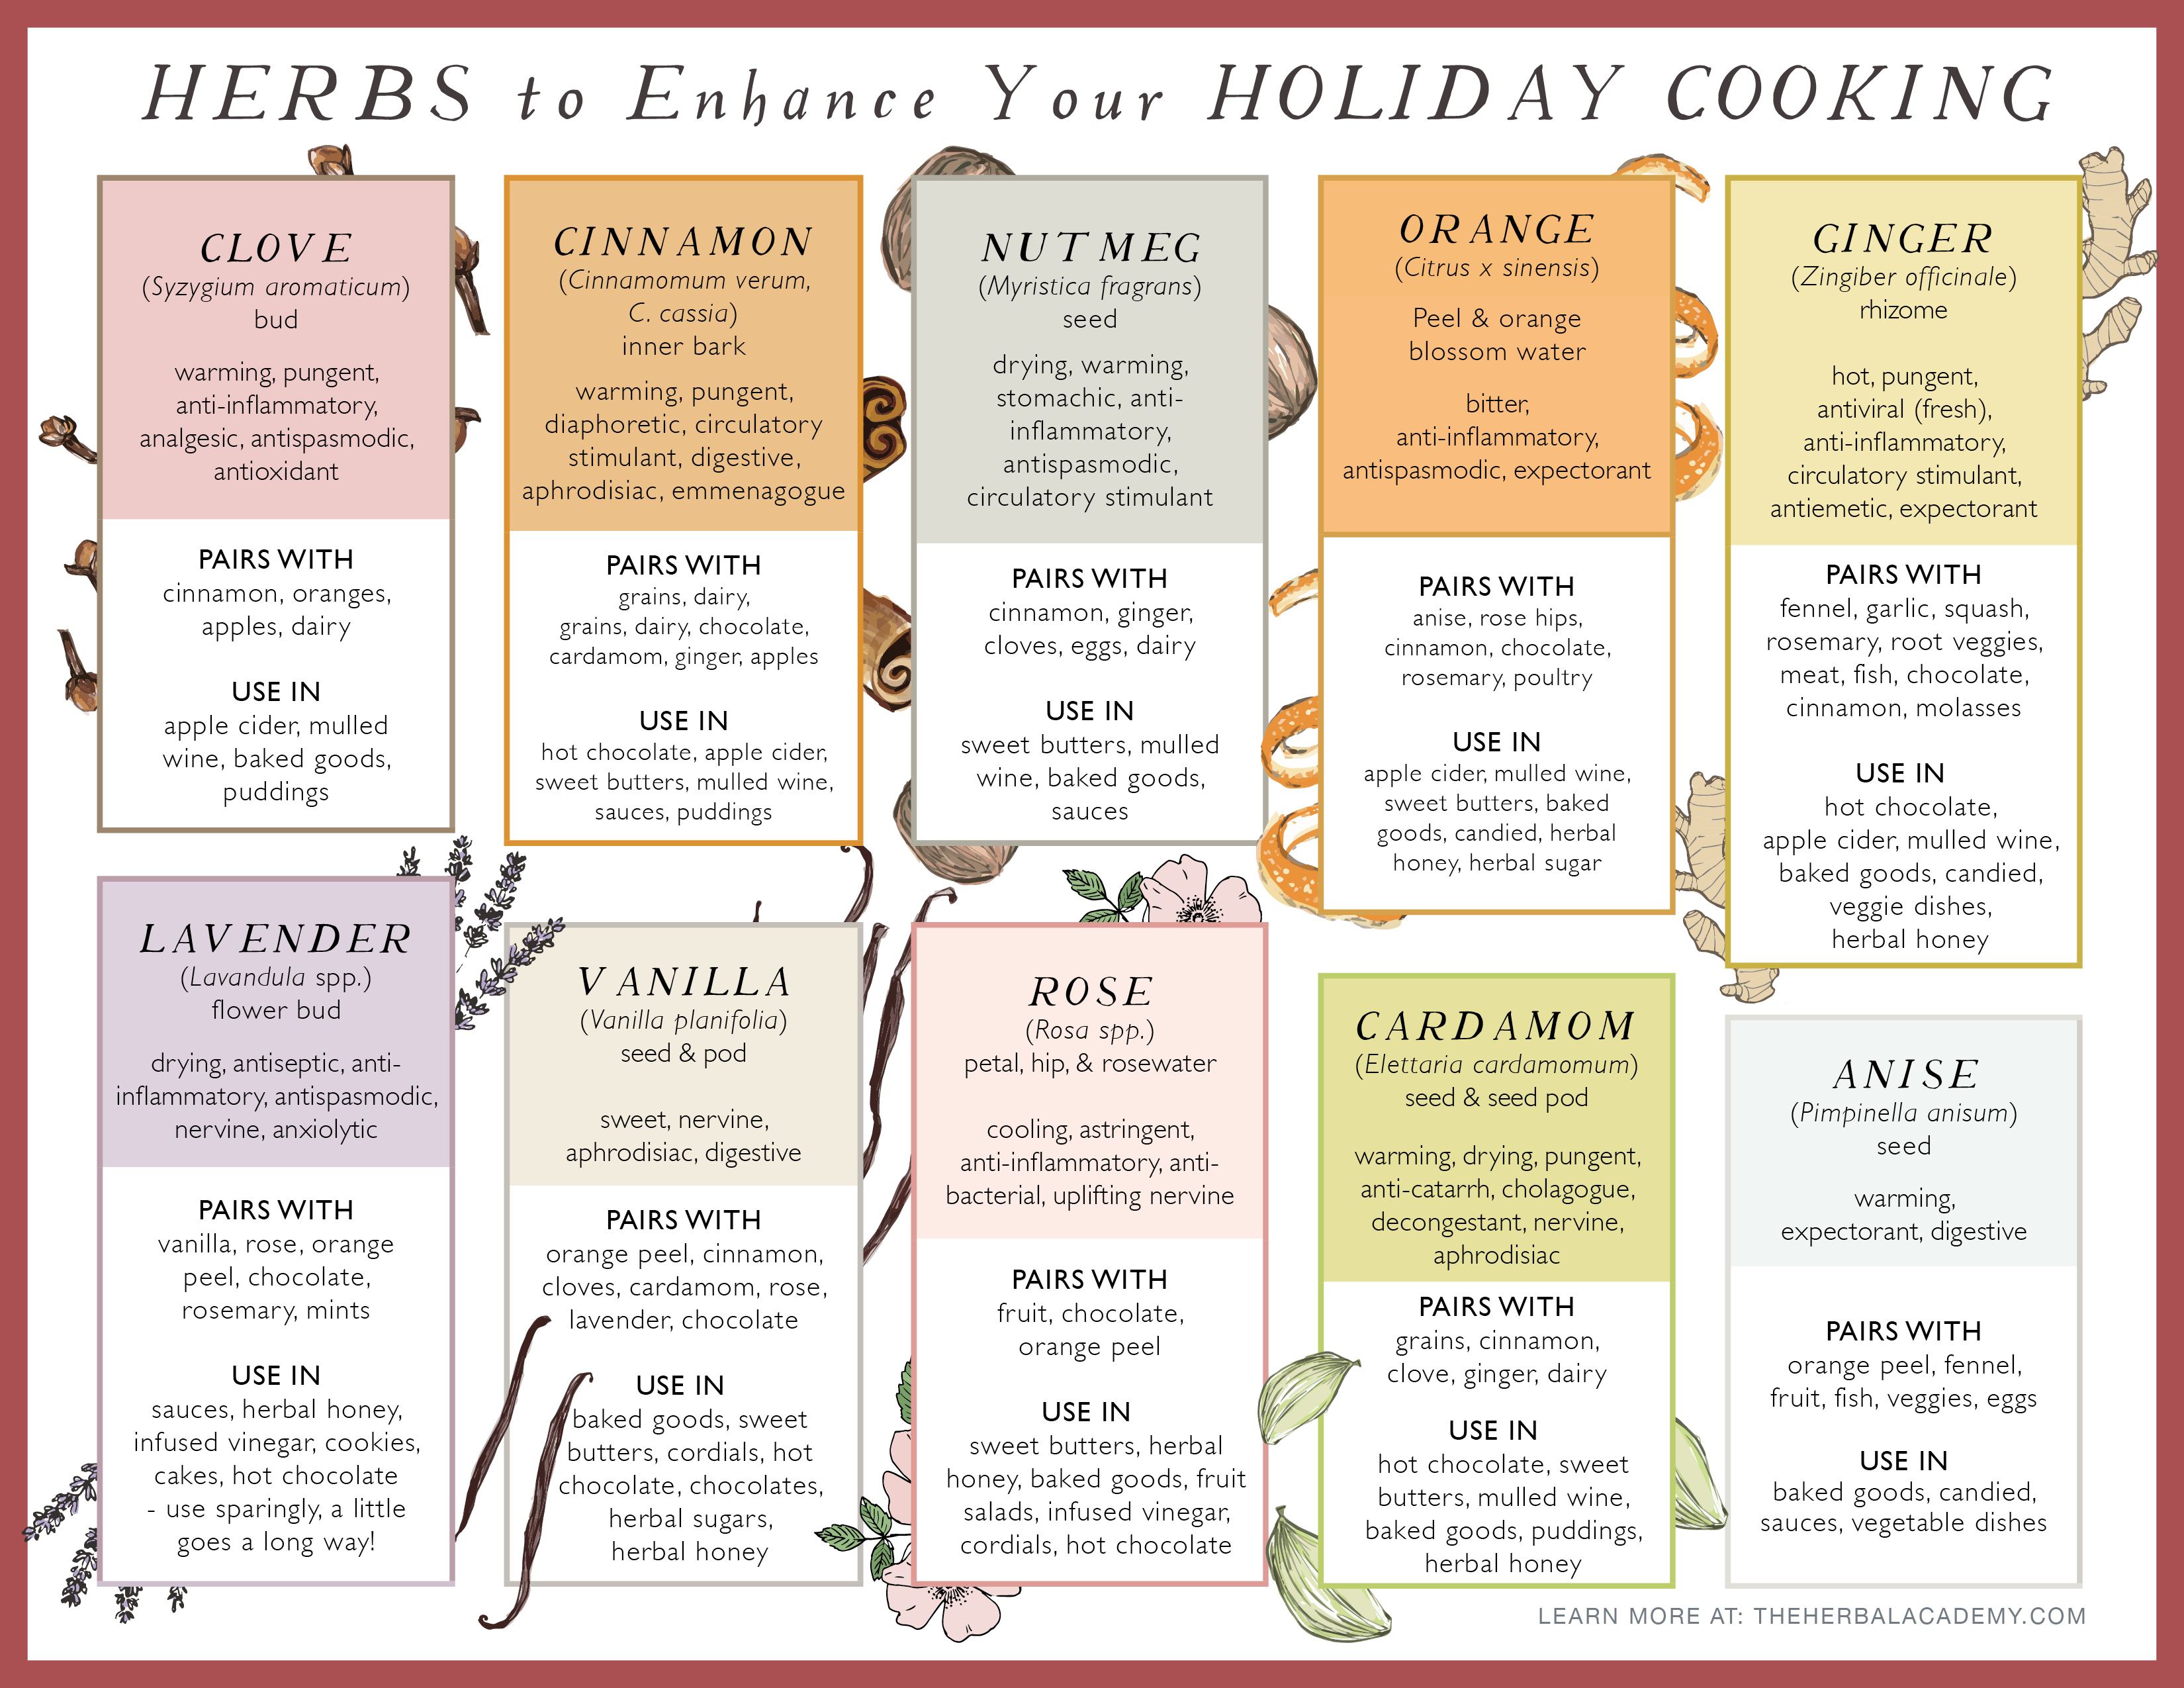 https://theherbalacademy.com/wp-content/uploads/2019/12/0-Herbs-to-Enhance-Holiday-Cooking.pdf